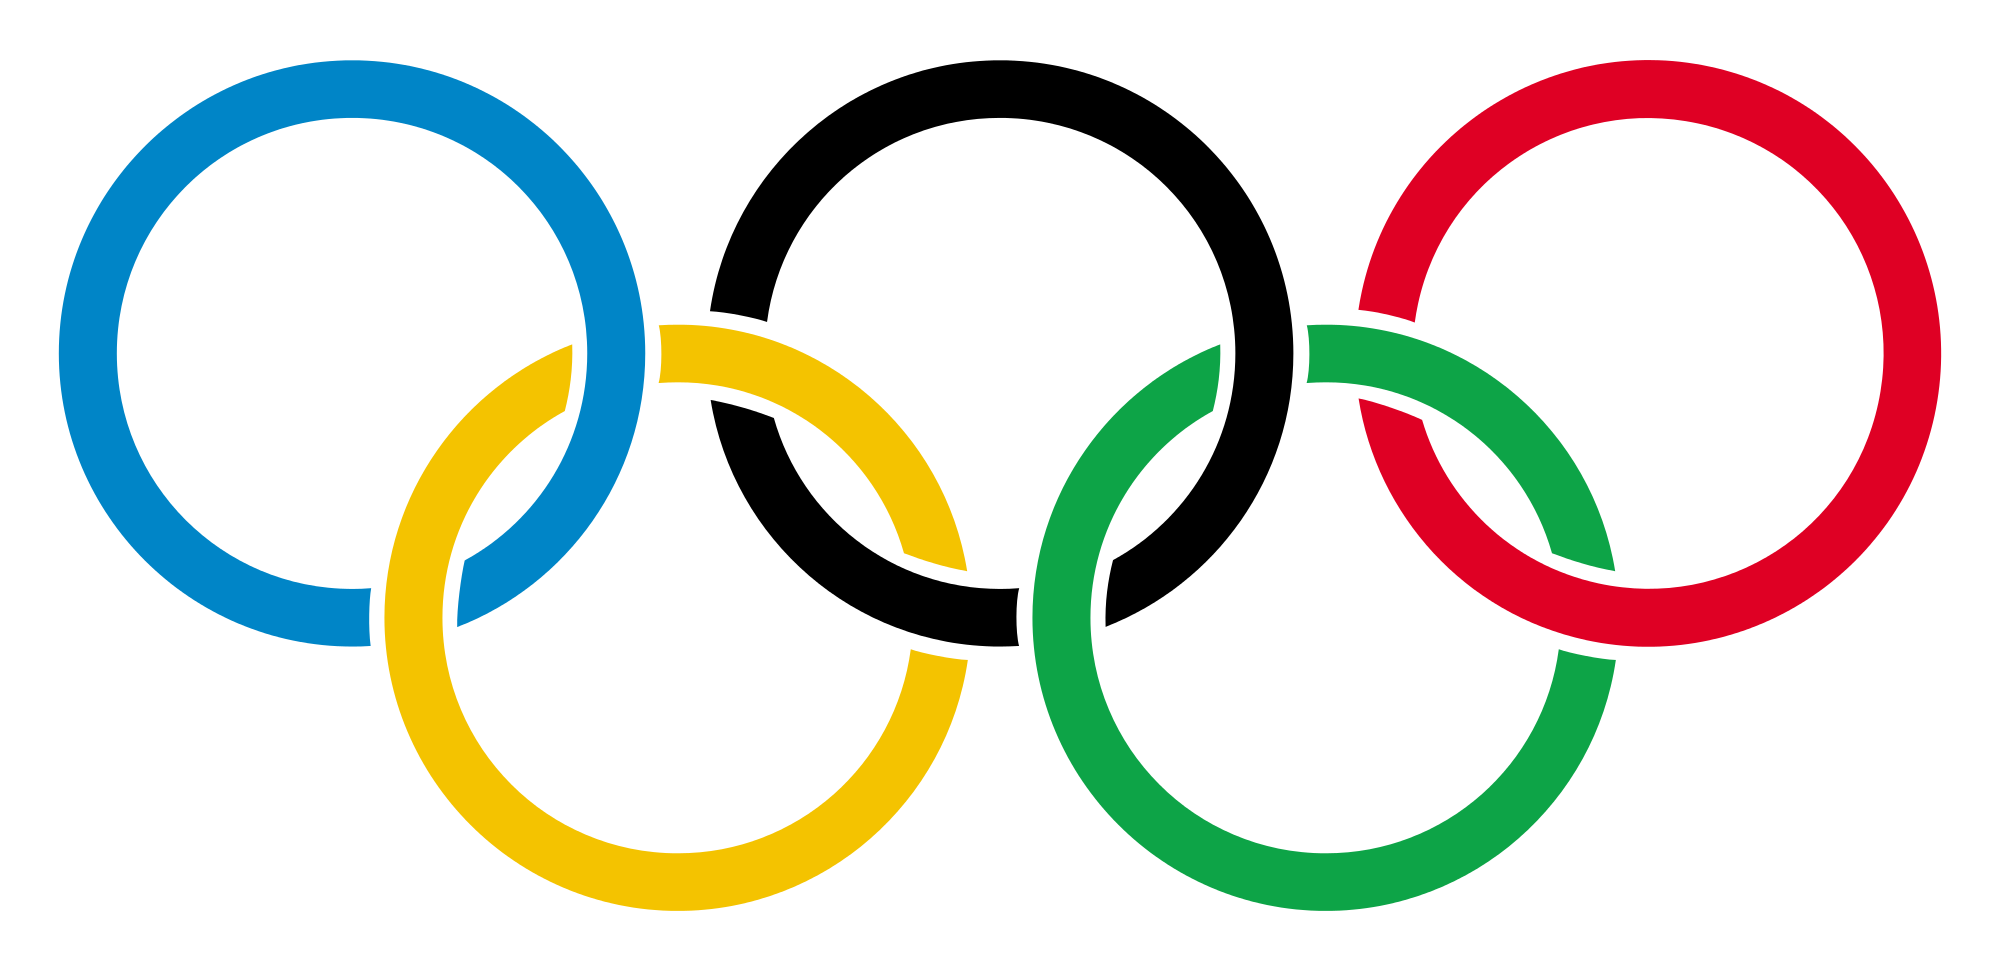 Scandle clip. File olympic rings with